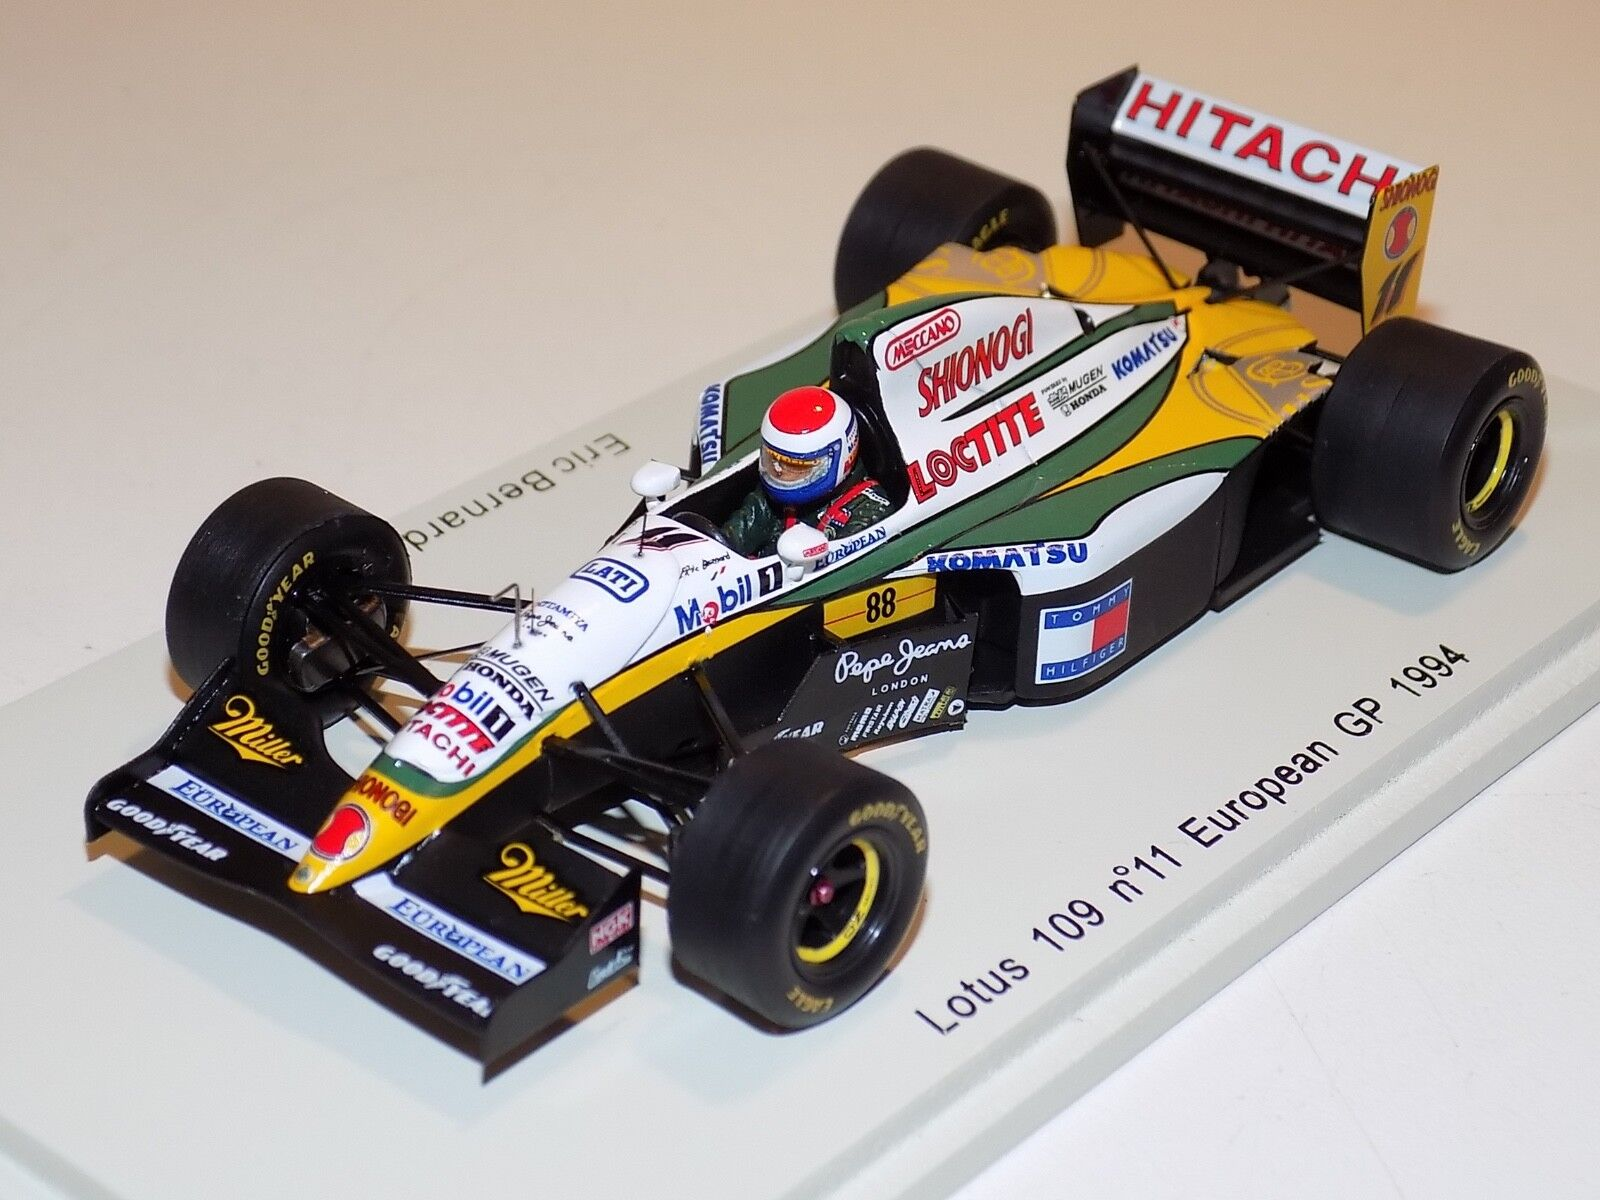 1/43 Spark F1 Lotus 109 car  11 European Grand Prix 1994 Eric Bernard S1678